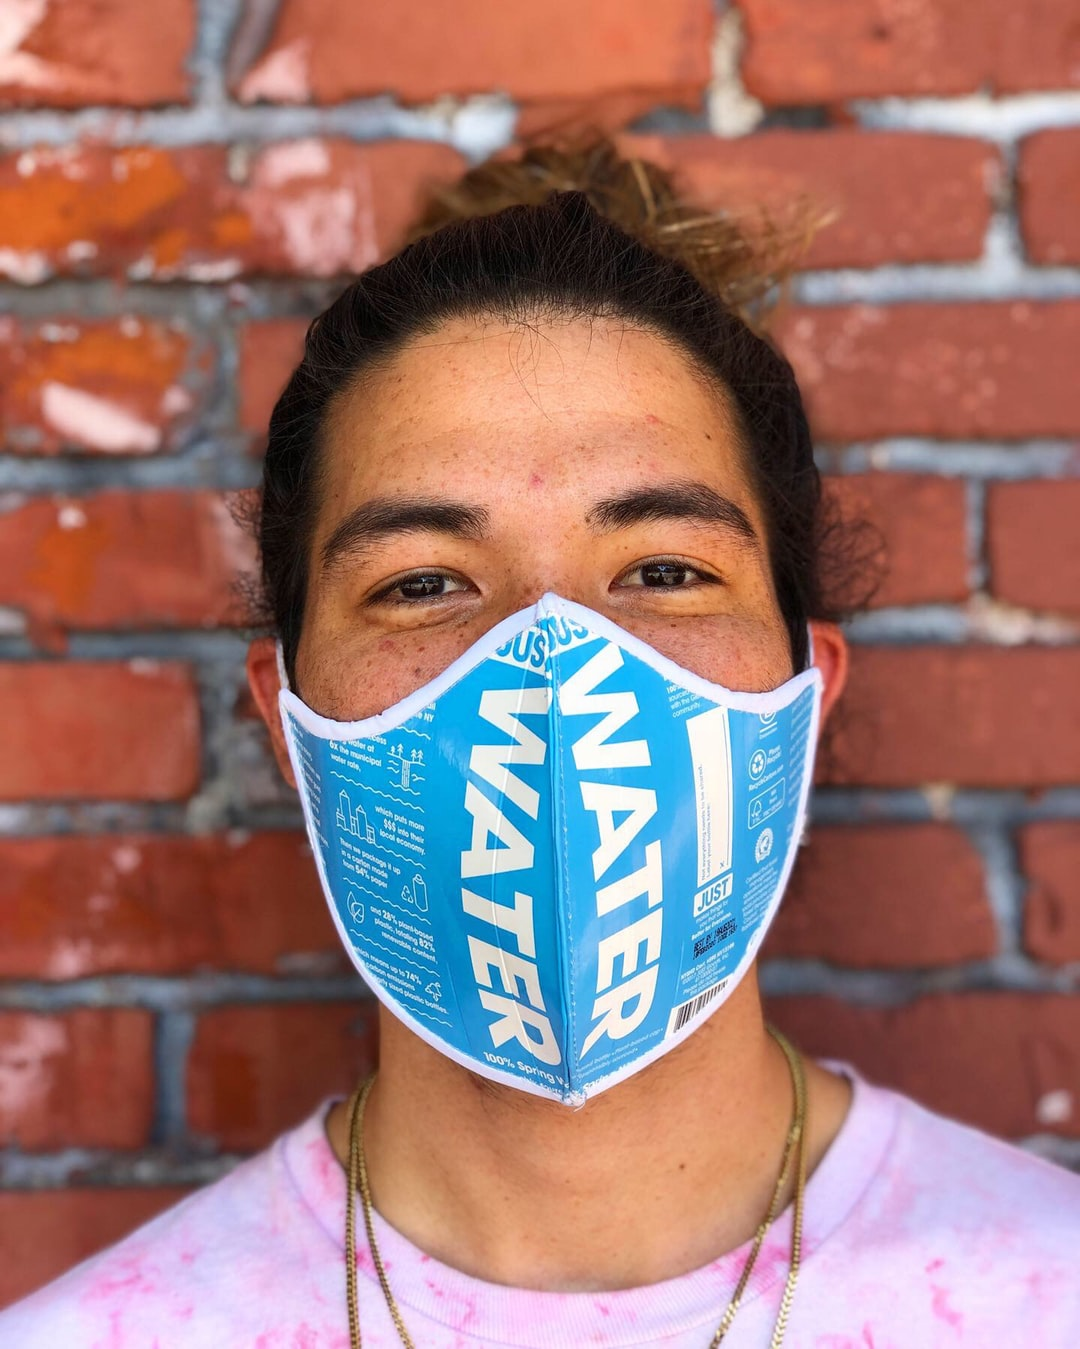 JUST WATER MASK! We partnered together to present this to the world :) Handmade from 2 water bottles